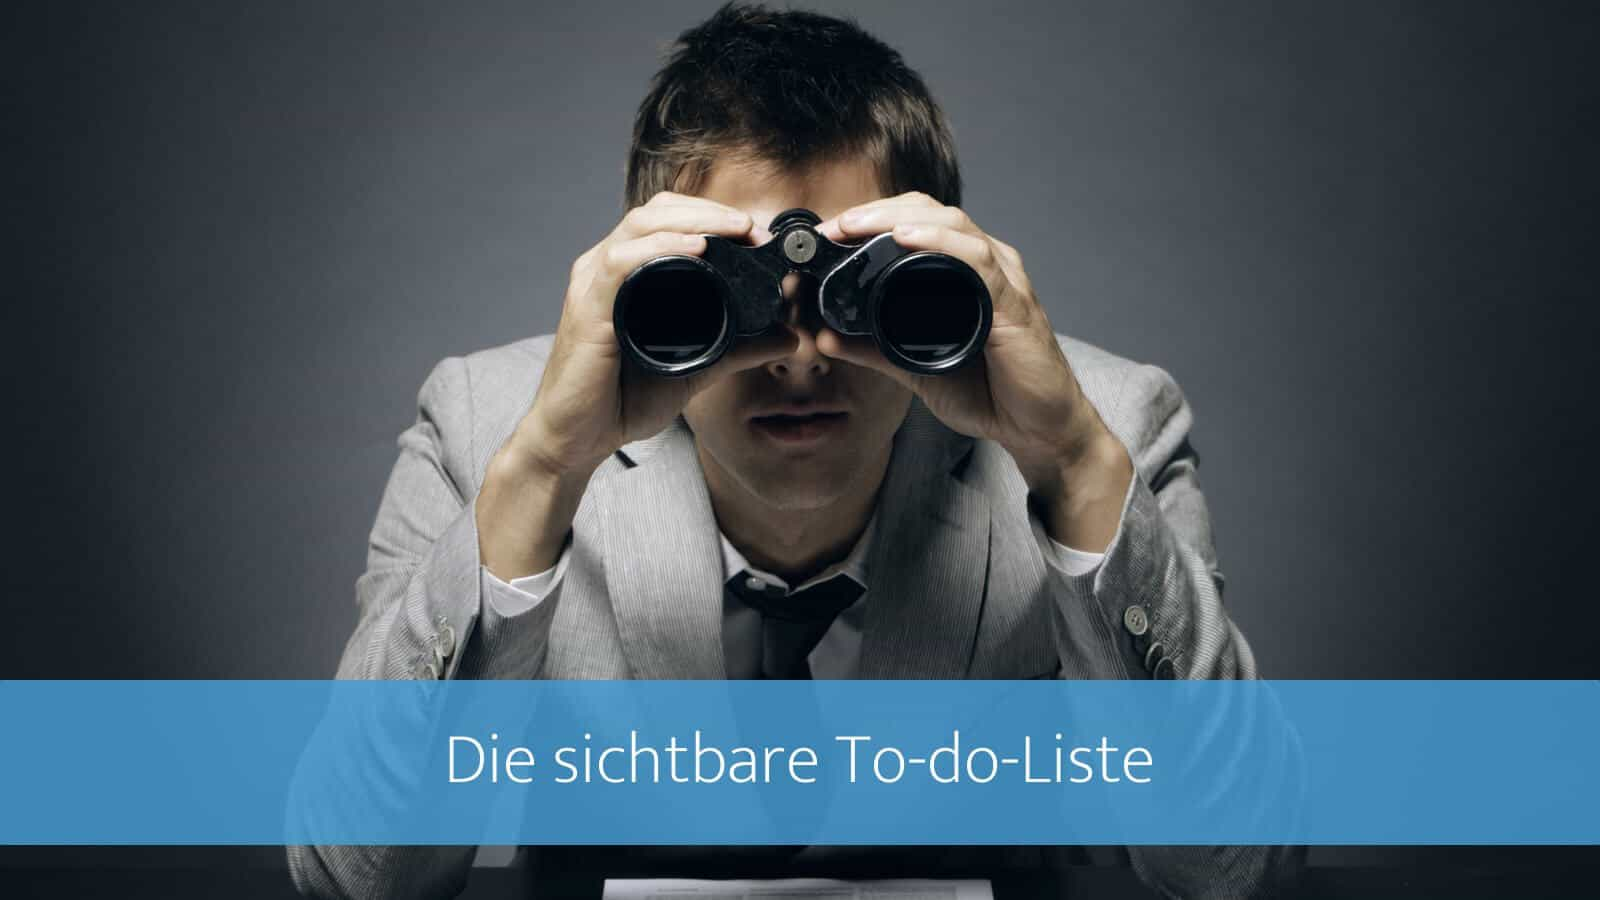 Die sichtbare To-do-Liste